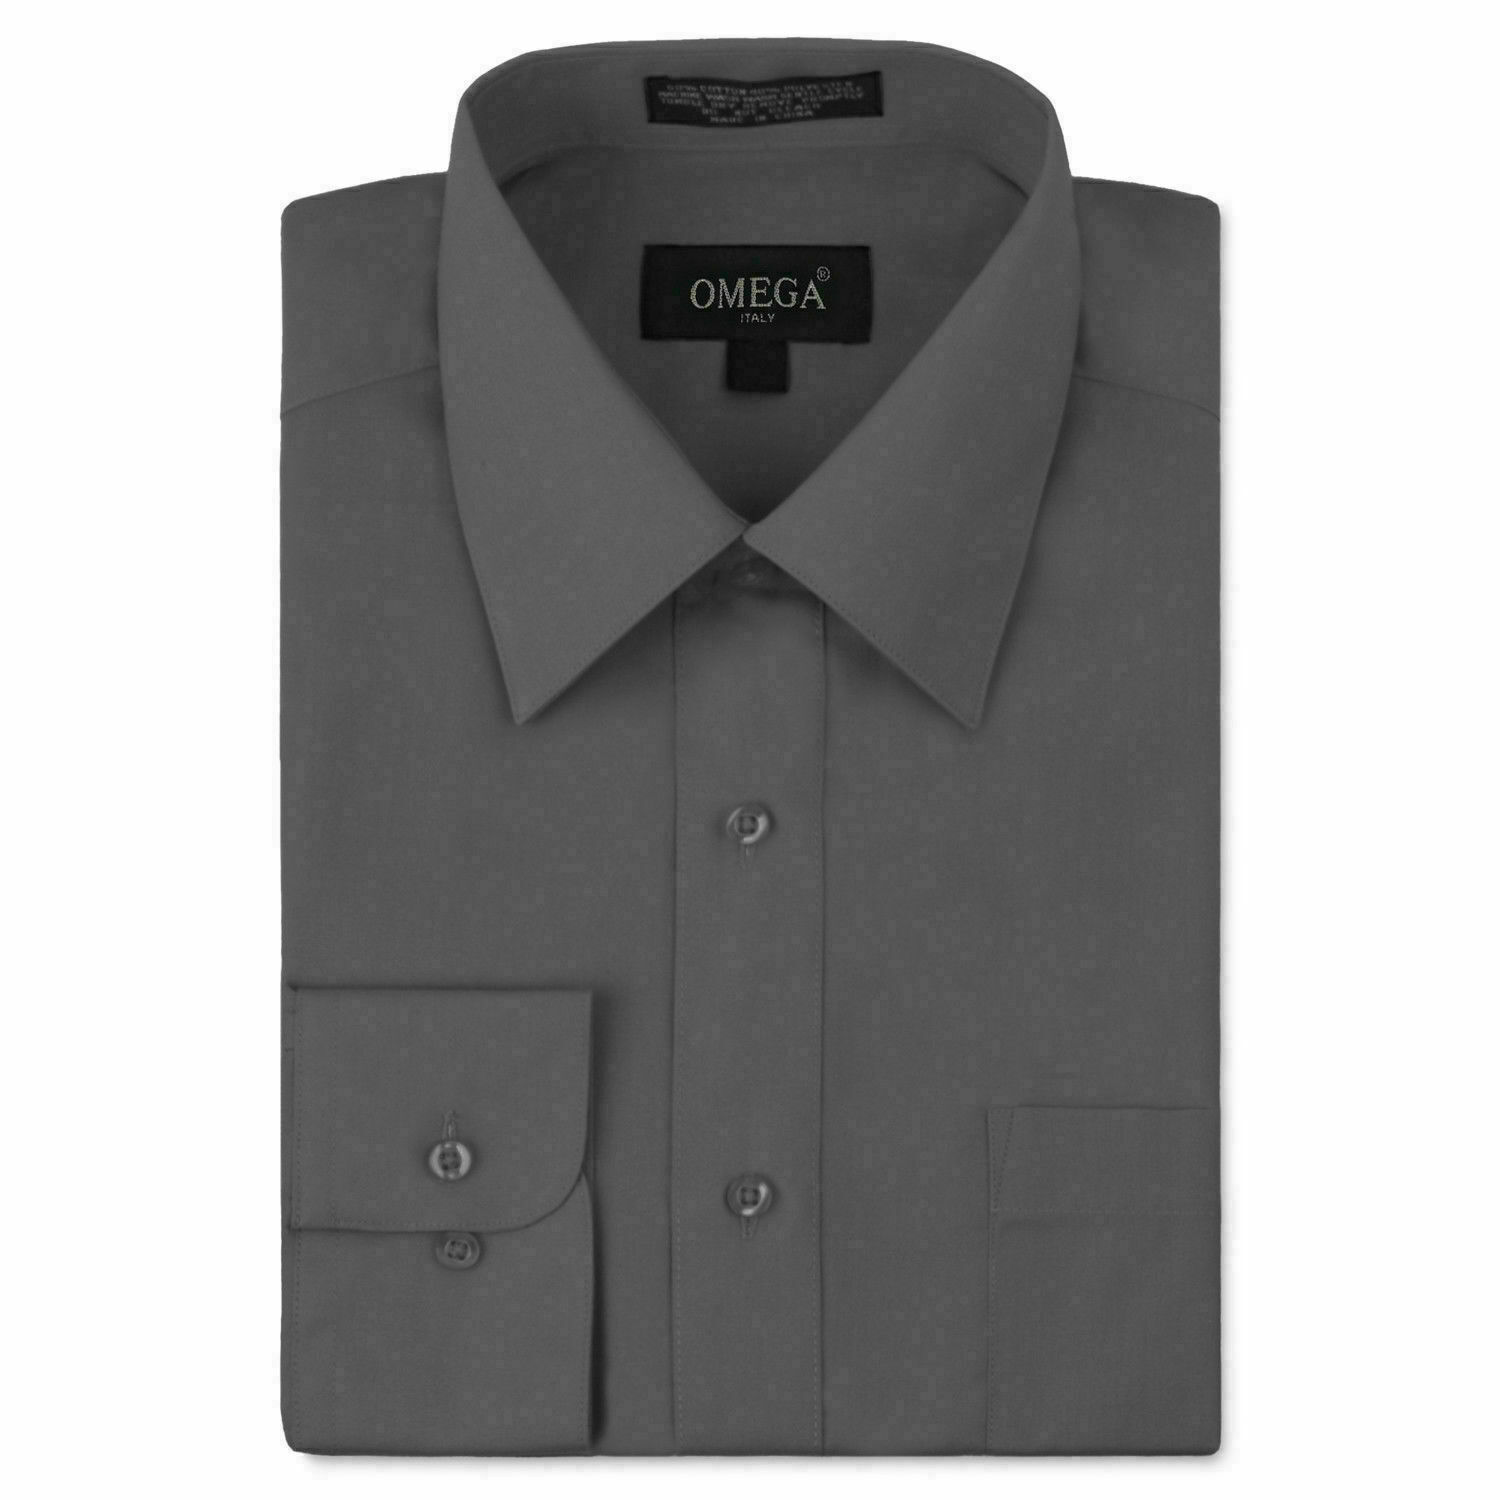 Omega Italy Men's Charcoal Dress Shirt Long Sleeve Regular Fit w/ Defect - M